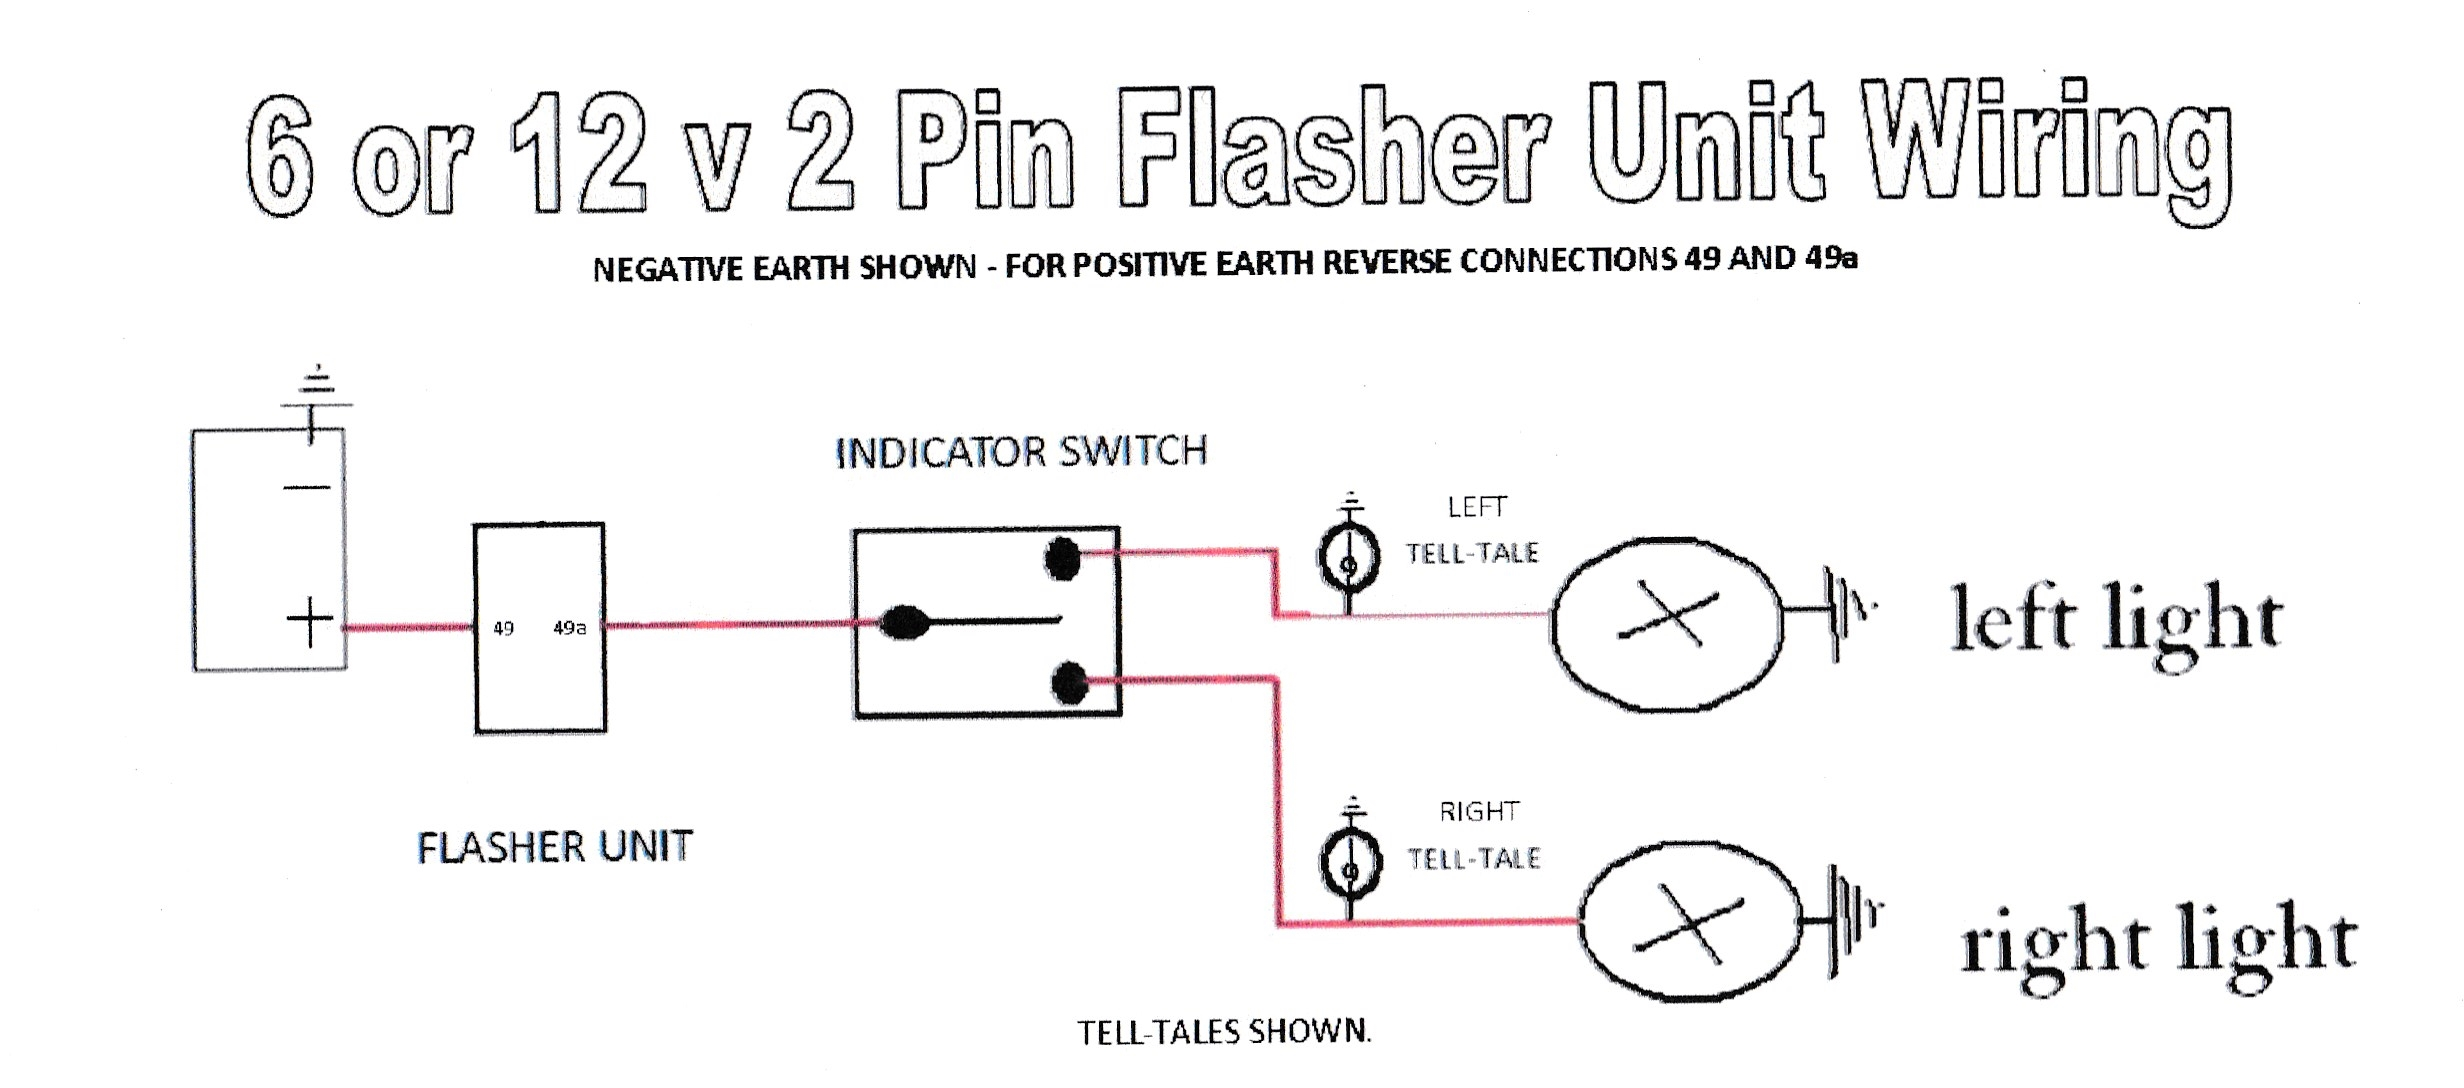 IMG_20150323_0001_NEW wiring diagrams to assist you with connecting up flasher unit wiring diagram at edmiracle.co